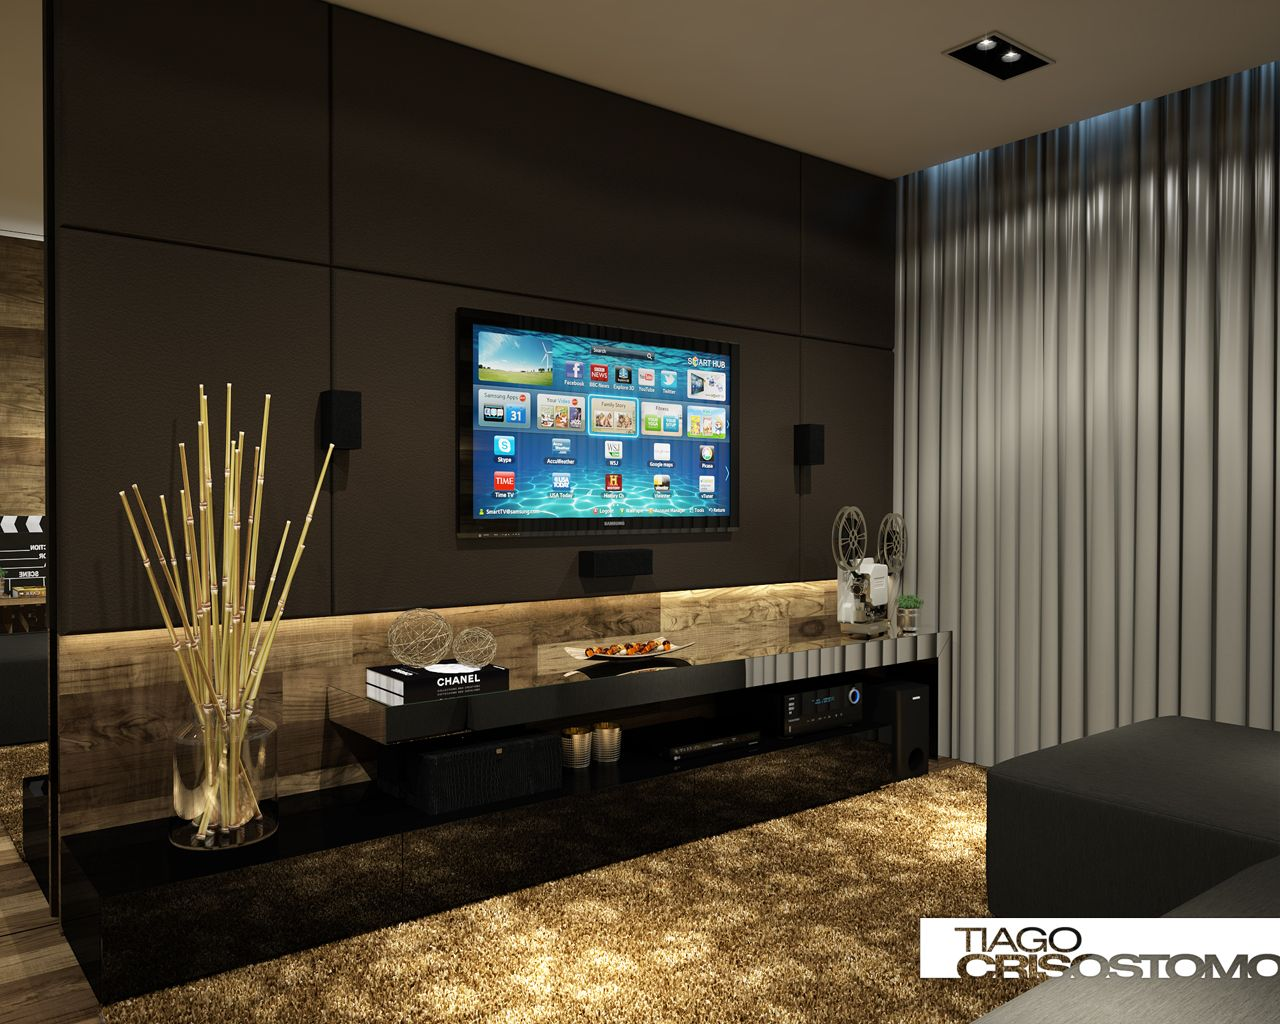 Best Ideas About Home Theater Design On Pinterest Theater - Designing home theater